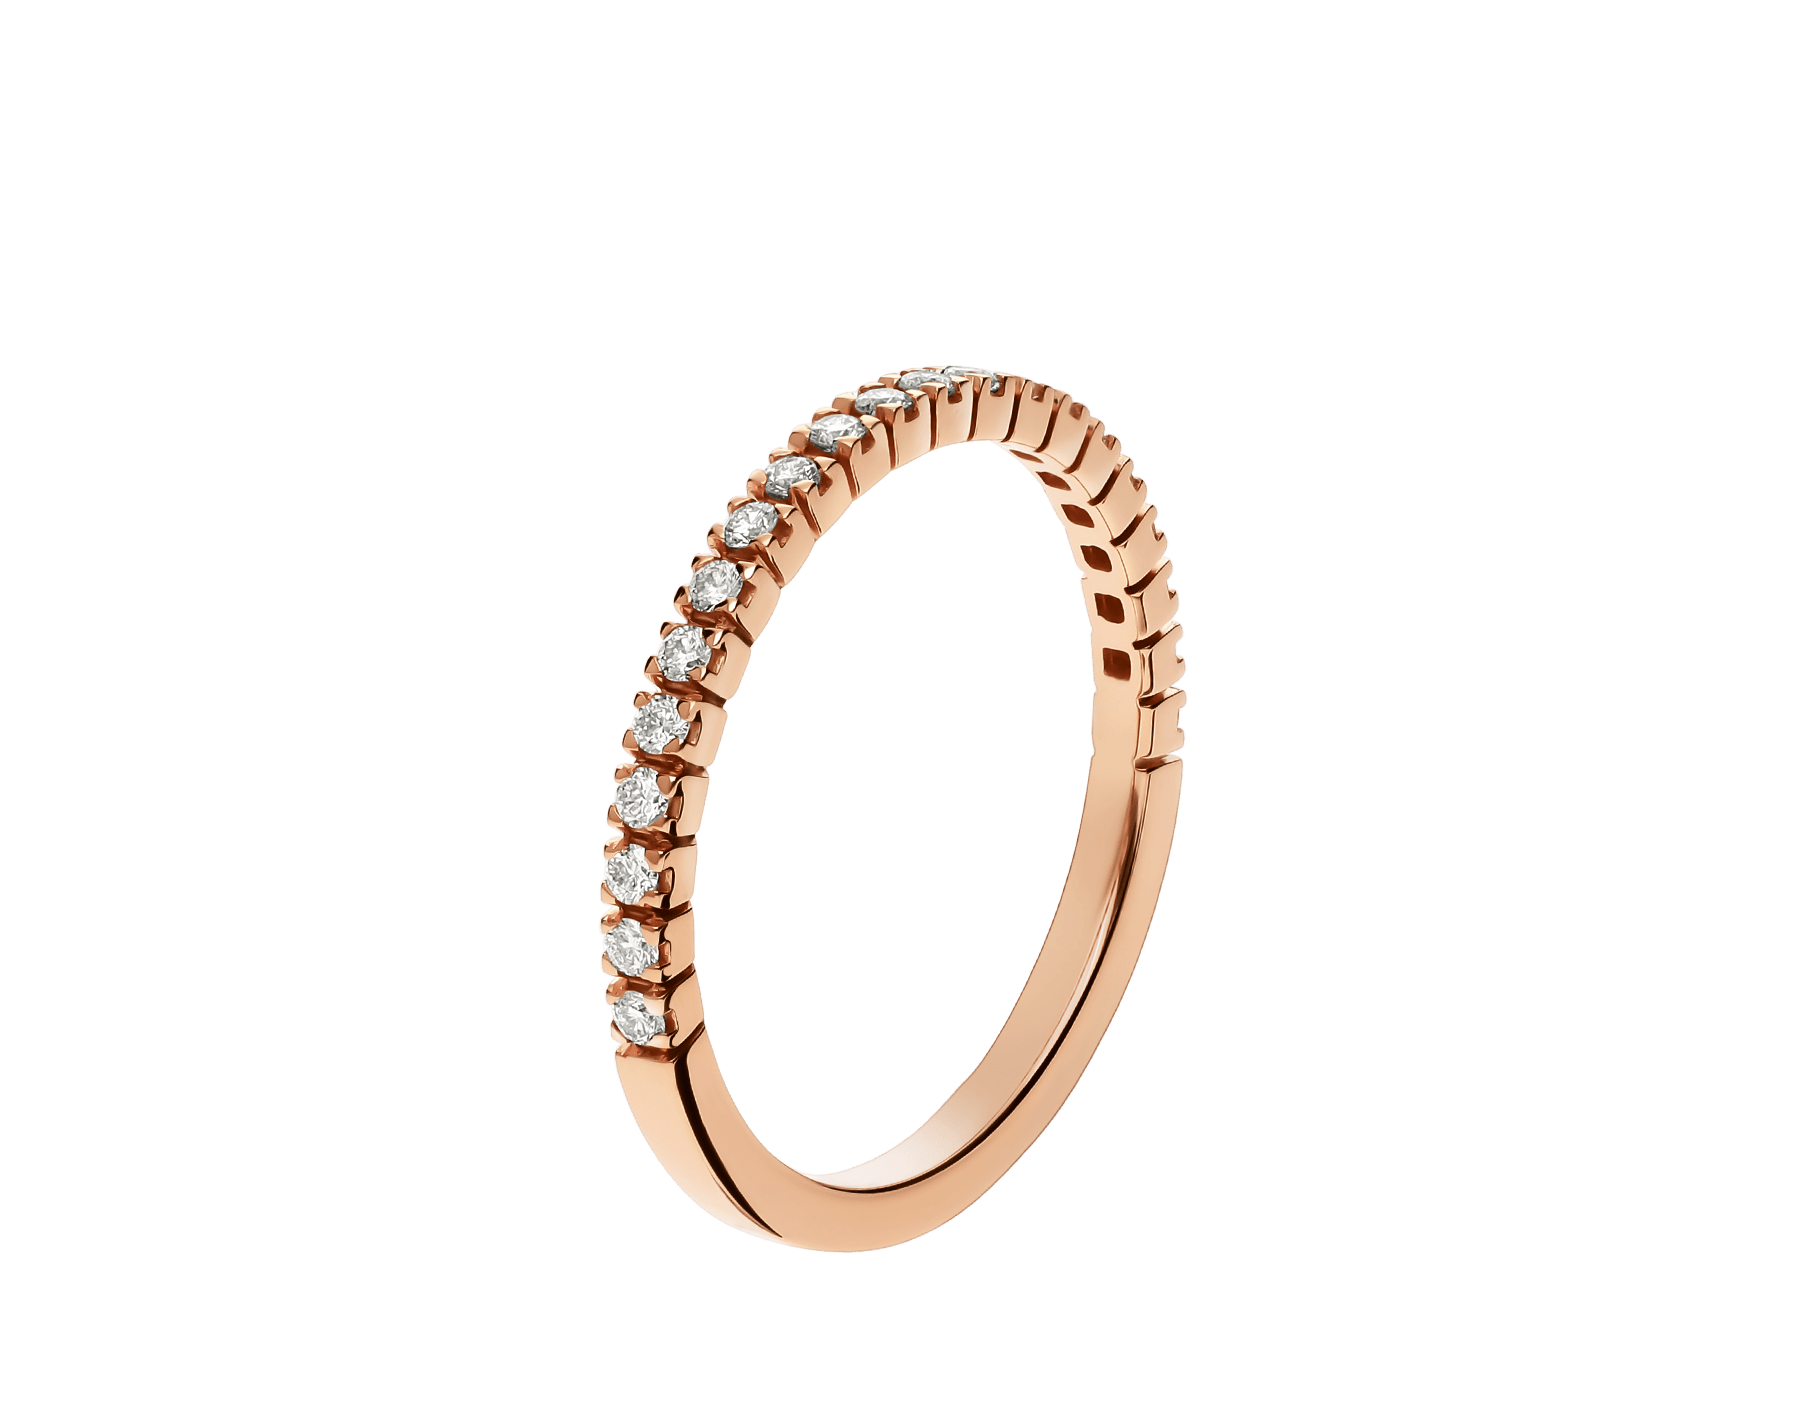 Eternity Band in thin size in 18 kt rose gold with demi tour round brilliant cut diamonds AN857561 image 1